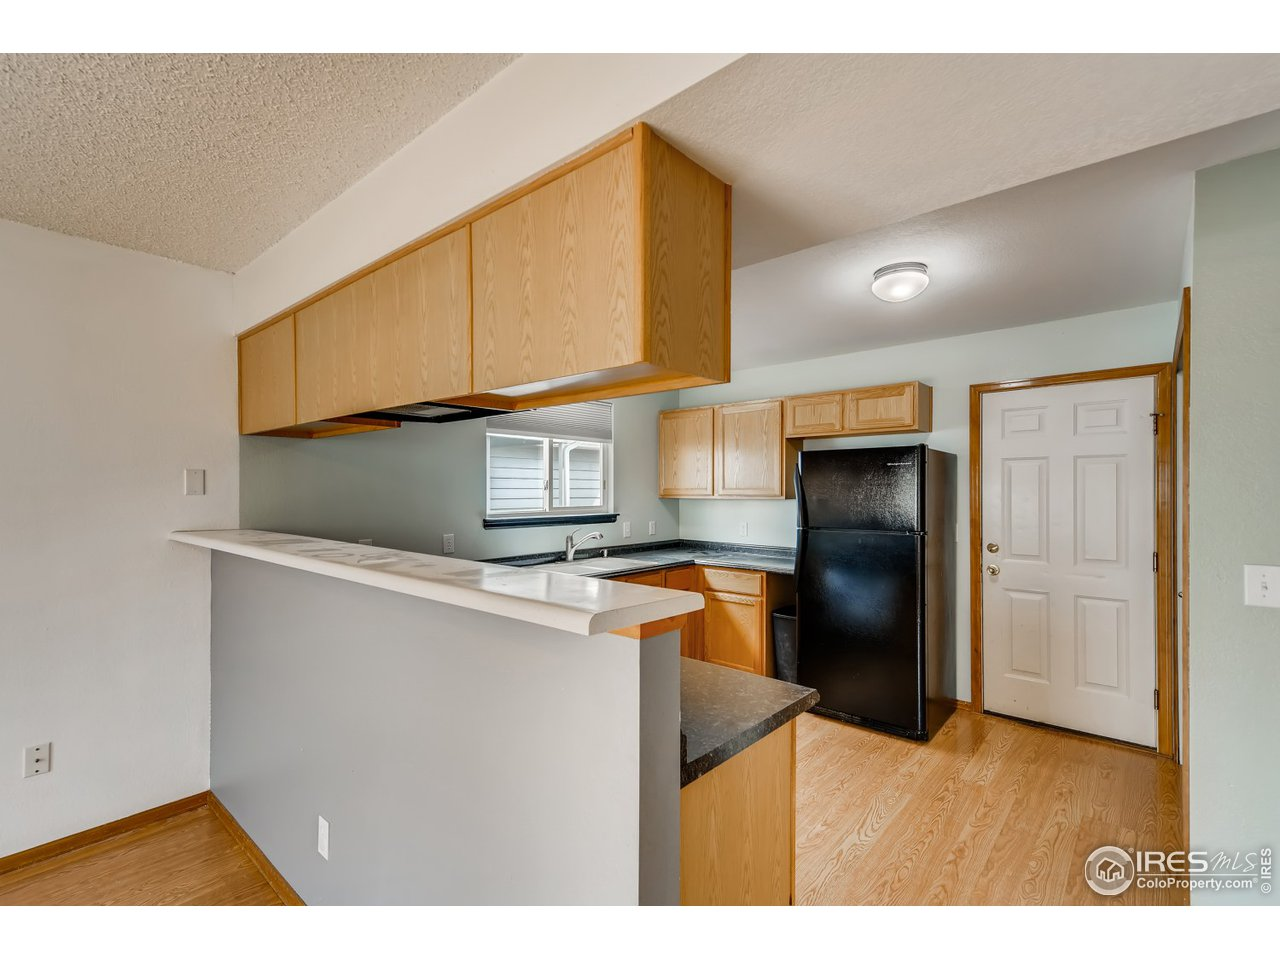 Kitchen - All appliances included